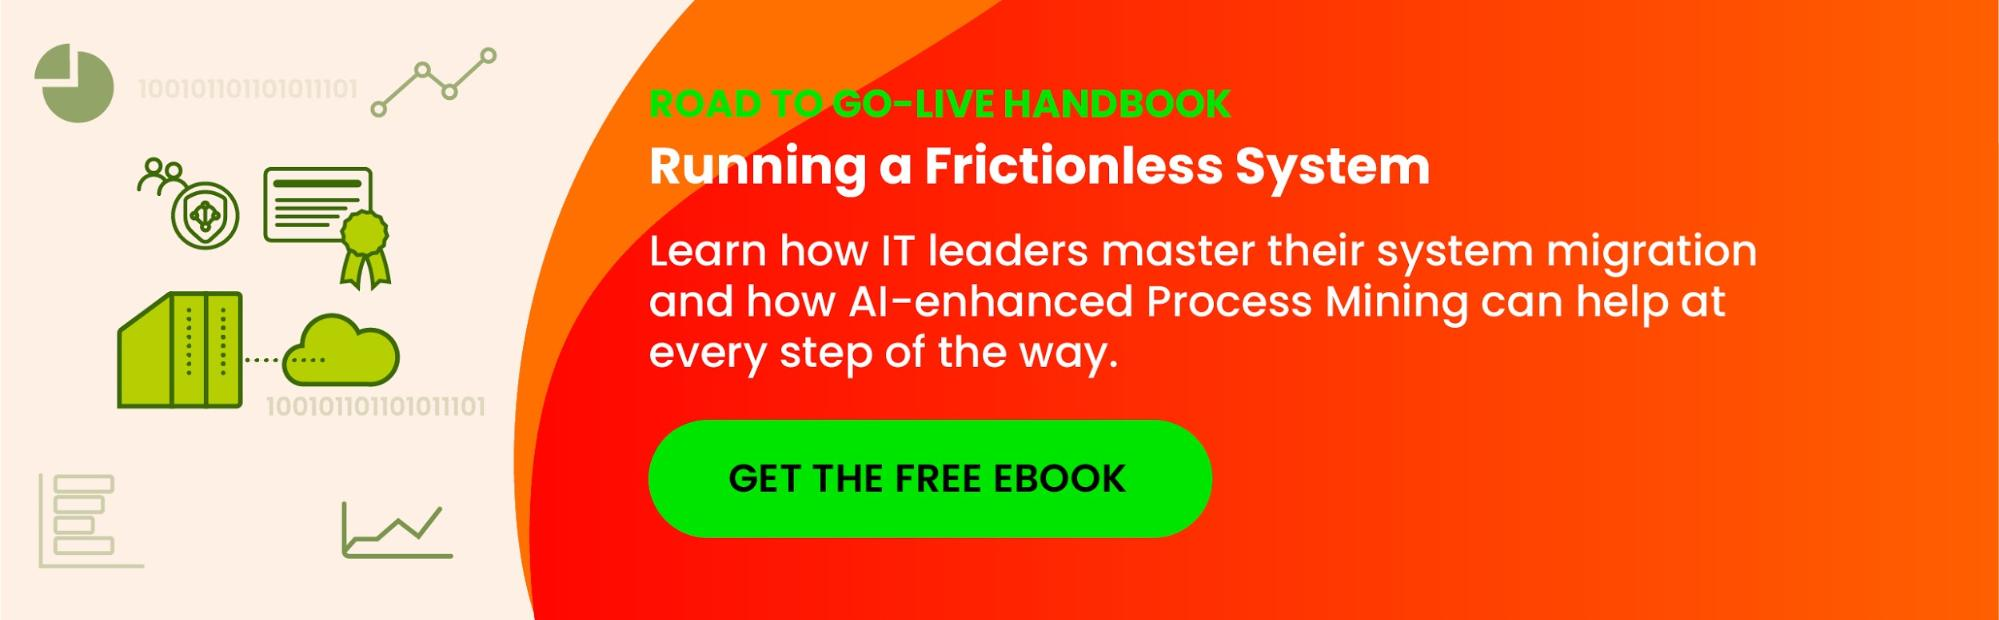 Celonis - The Road to Go-Live Handbook: Running a Frictionless System Migration